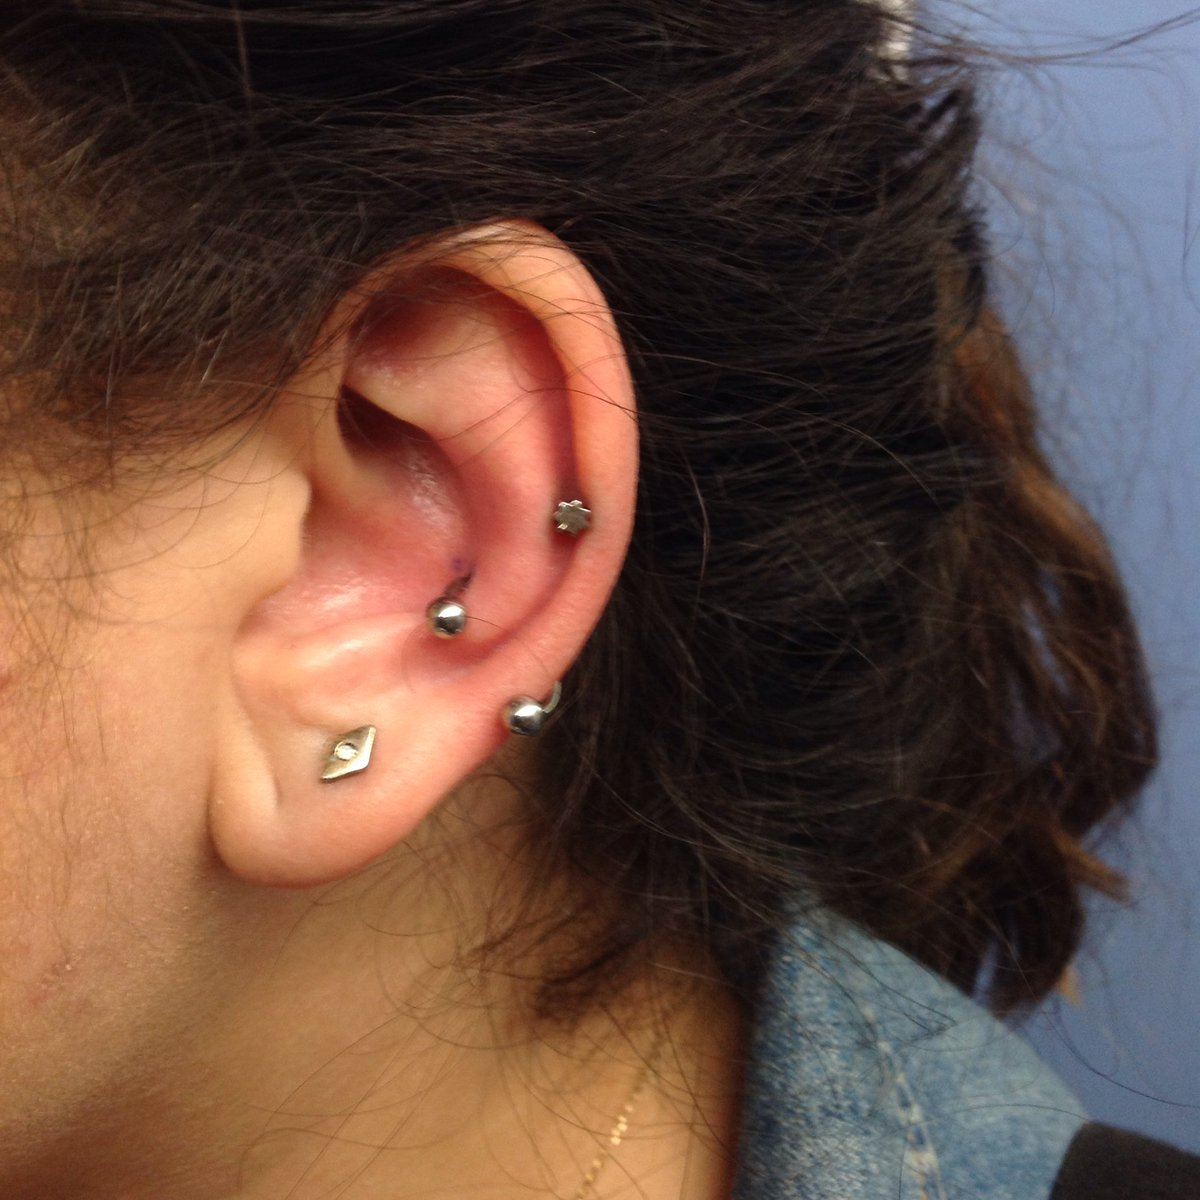 Wizz Tattoo Shop On Twitter Orbital Conch Piercing Made Here At